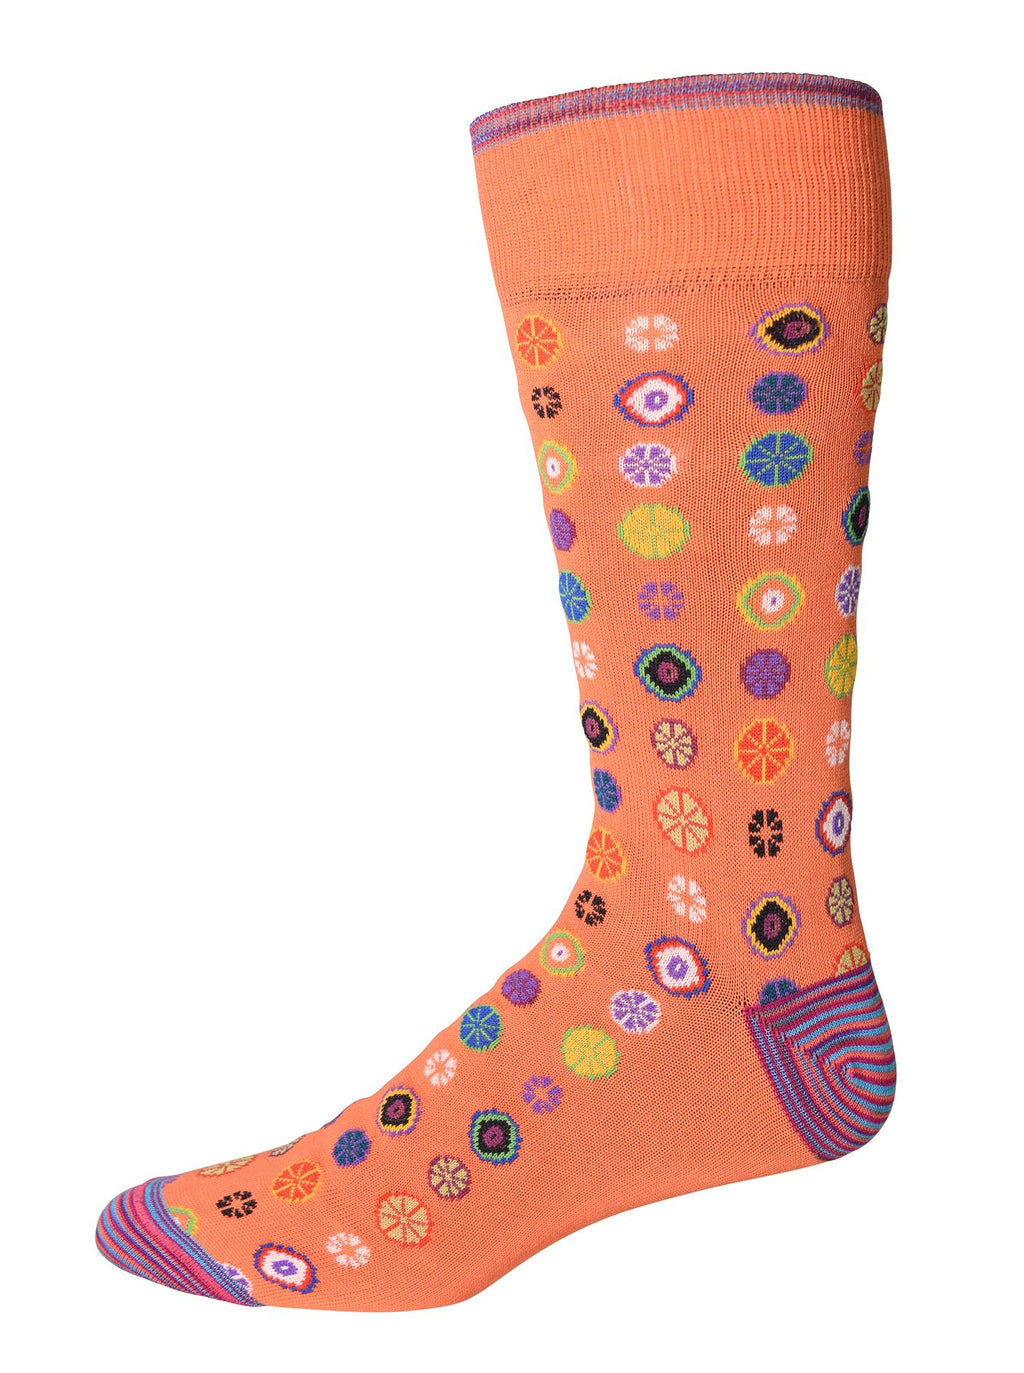 Robert Graham Socks - Fruit Cocktail Orange